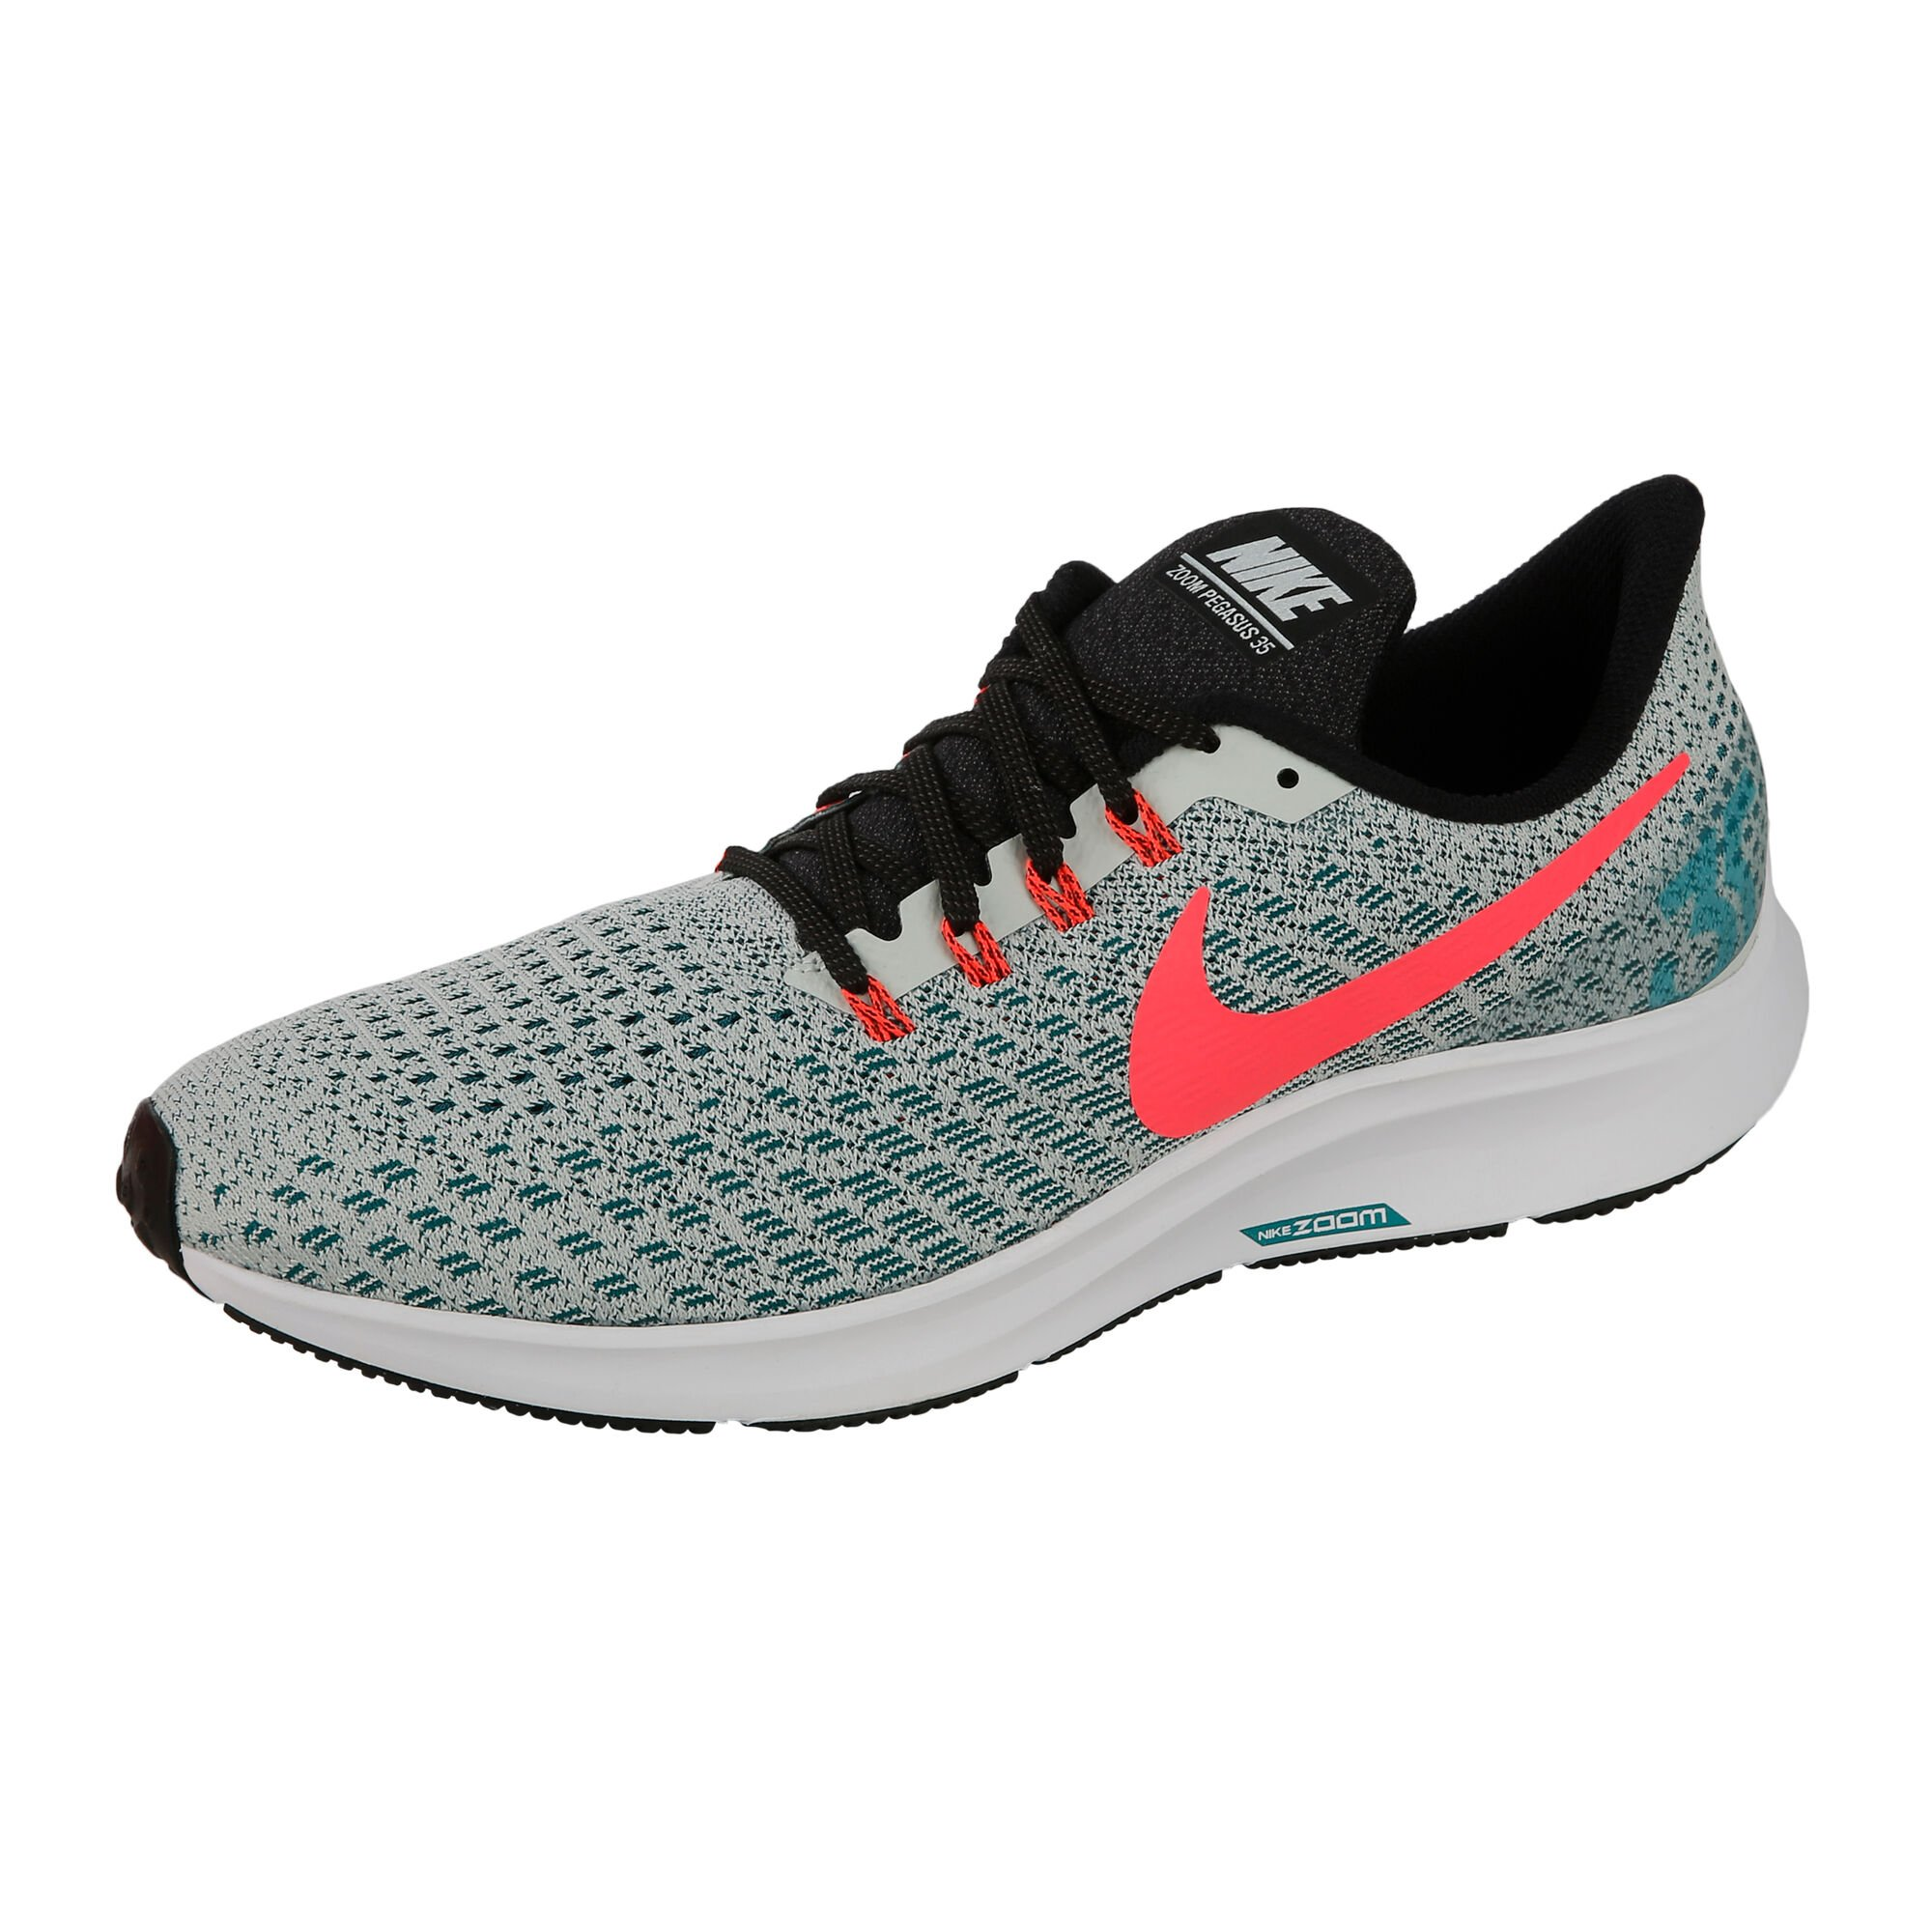 3c161aee2cb0 buy Nike Air Zoom Pegasus 35 Neutral Running Shoe Men - Grey